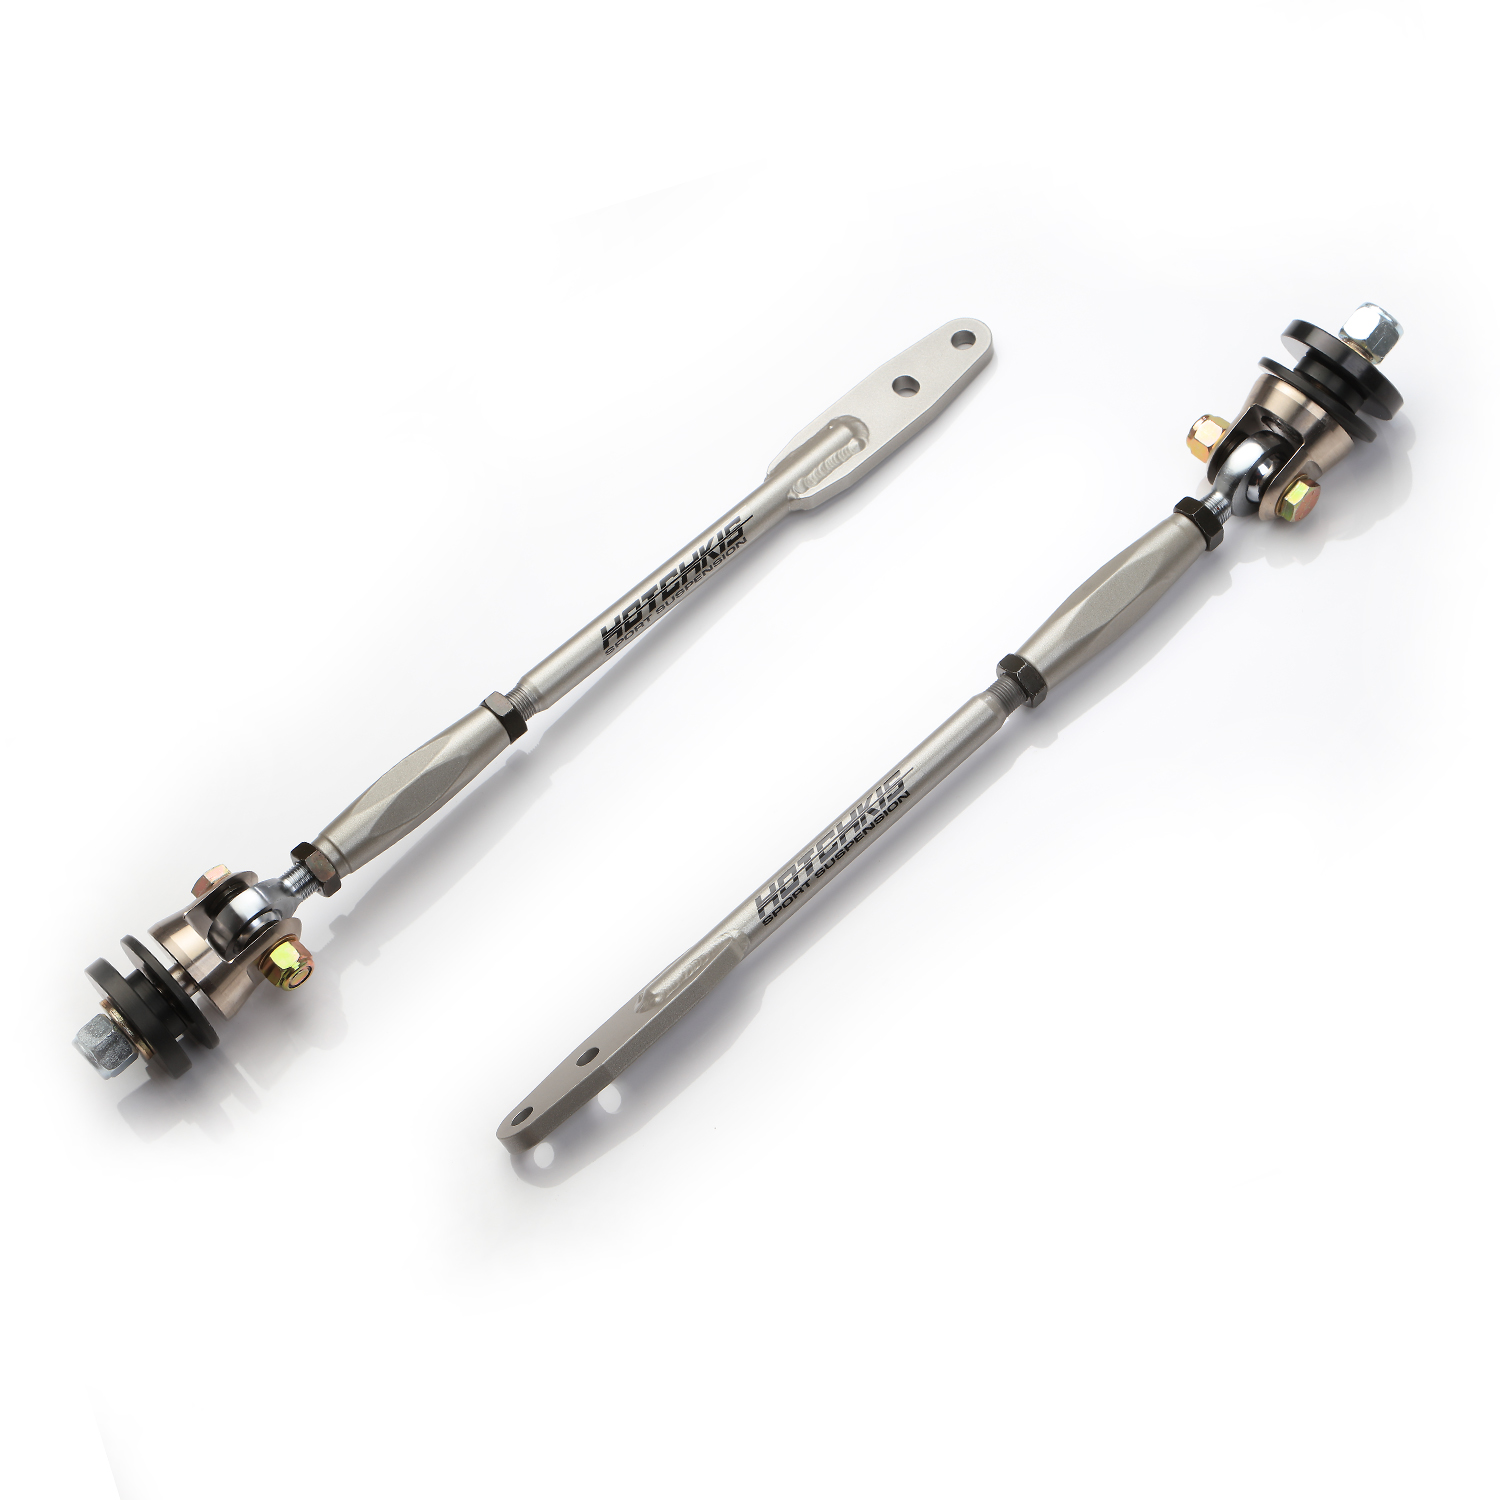 64-66 Mustang Strut Rod Kit